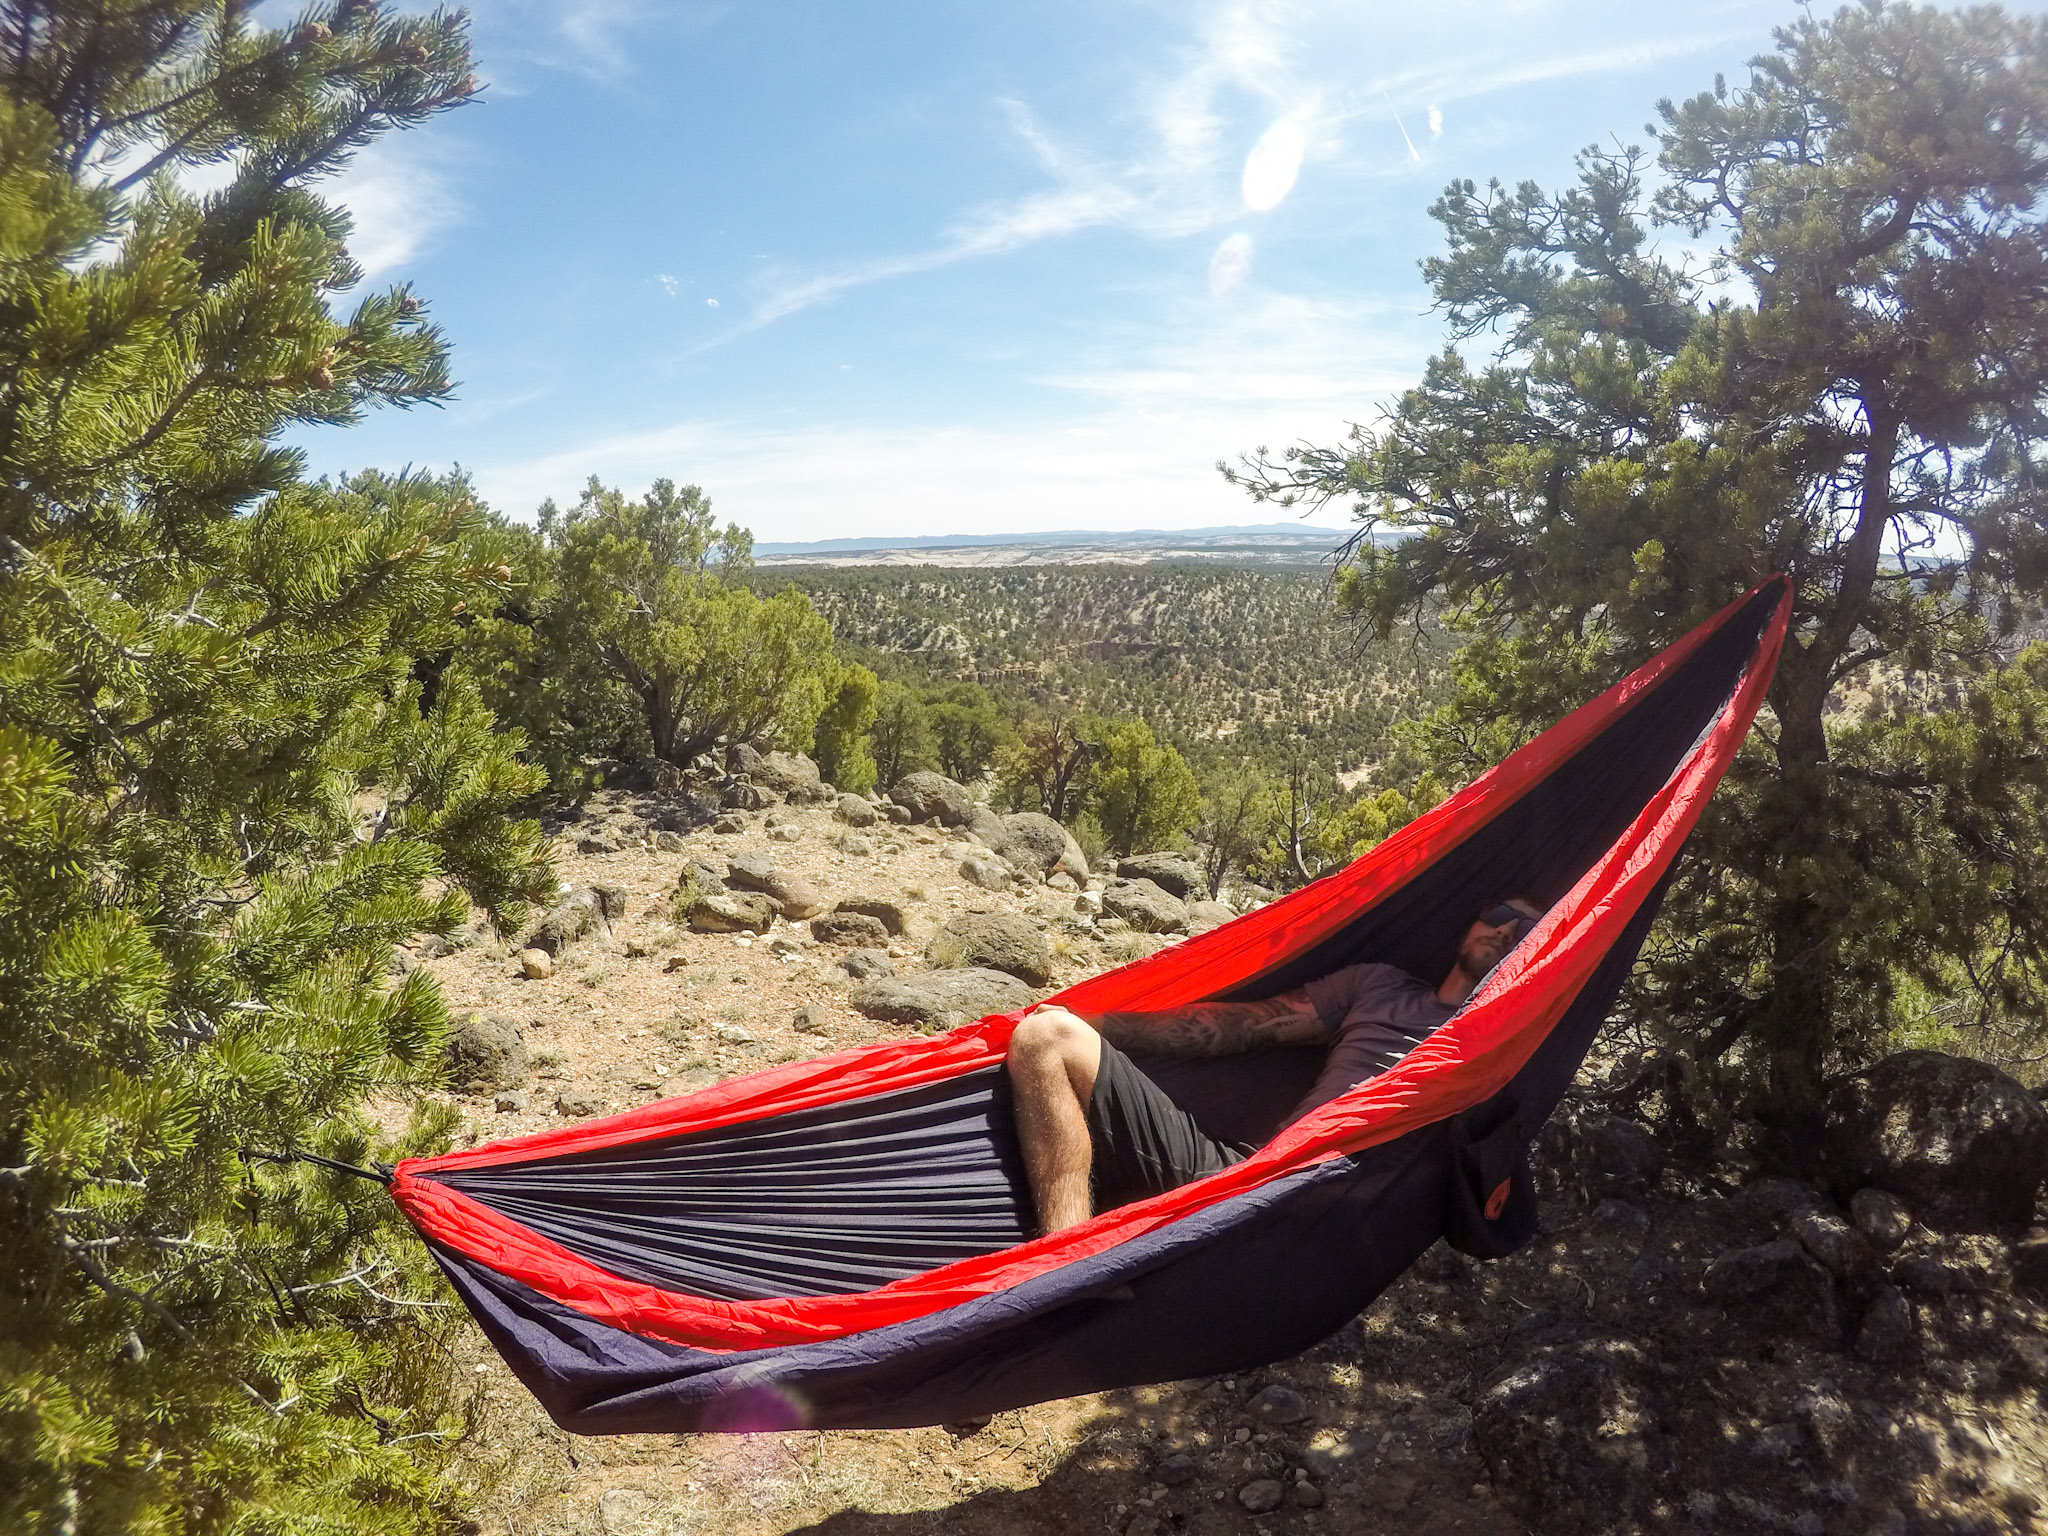 Requirements for the perfect camp site - trees for hammocking!